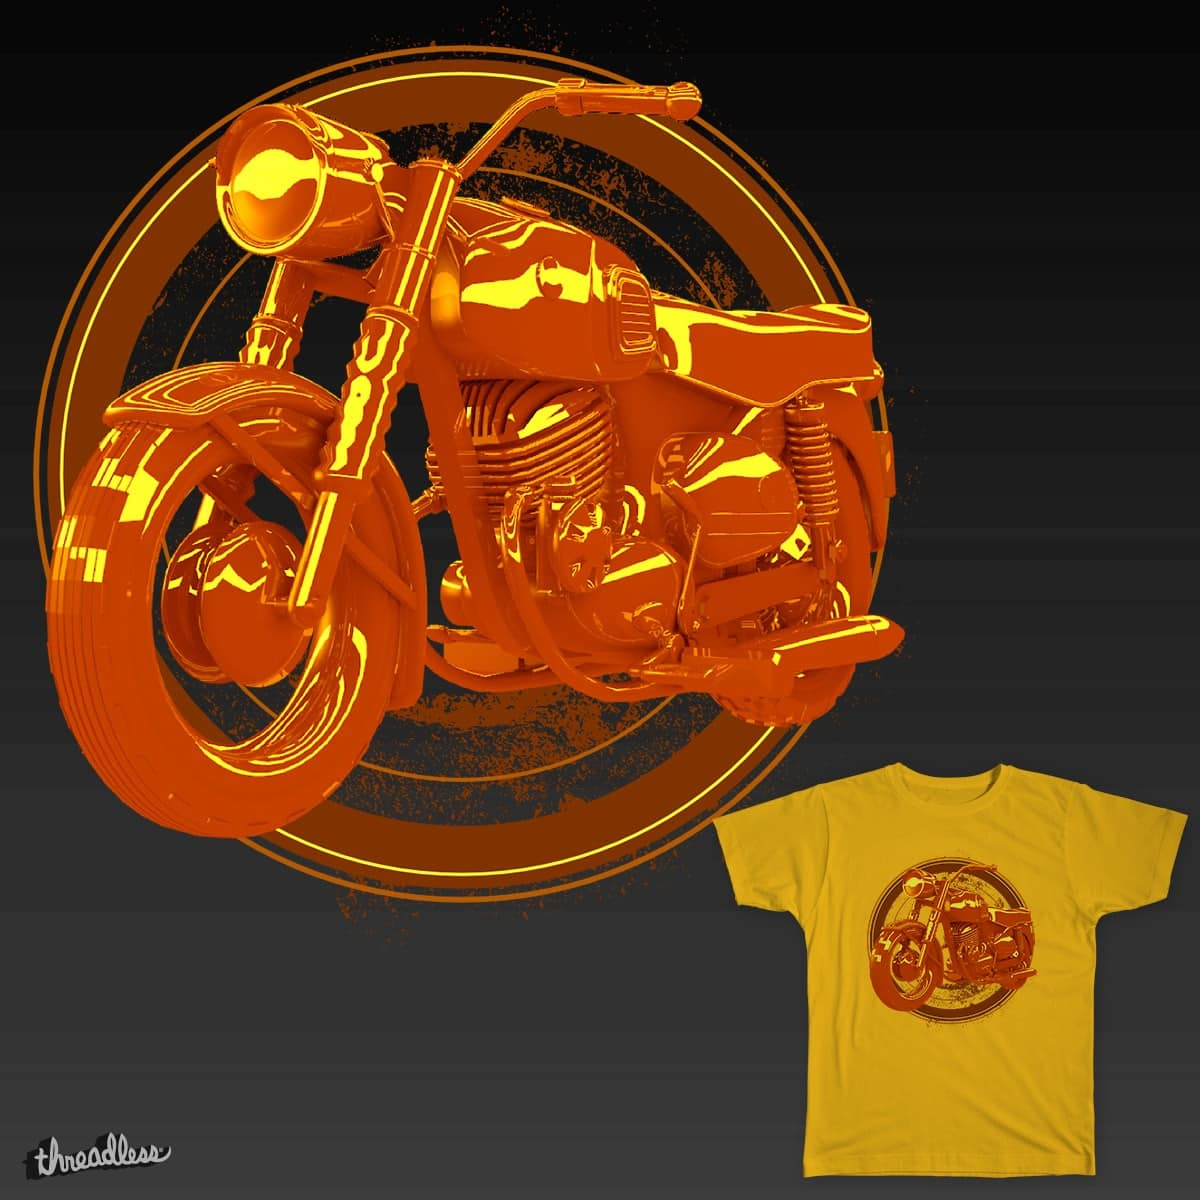 Brown Motorcycle by chaitanyak on Threadless